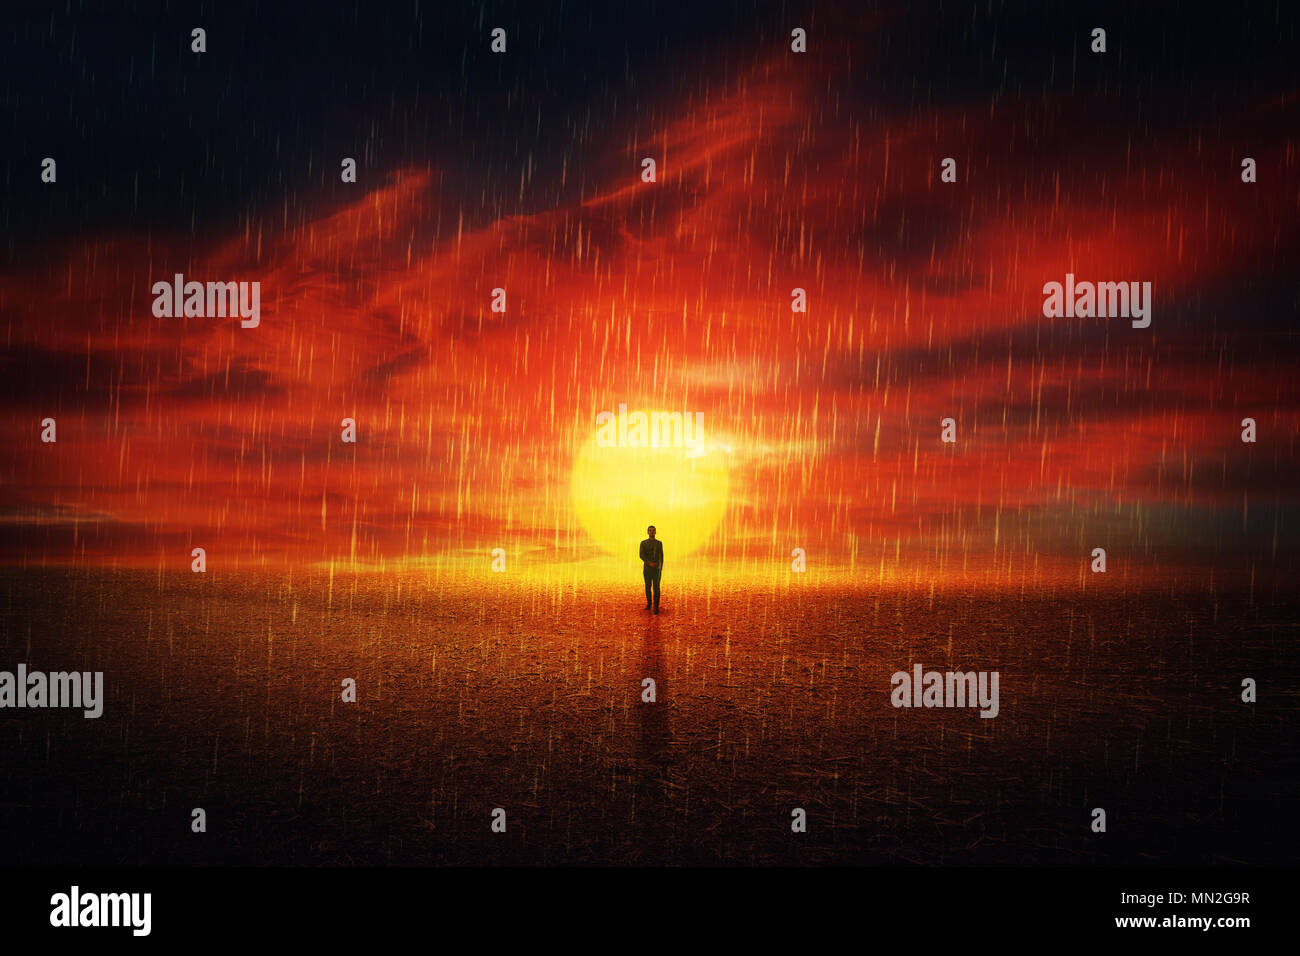 Futuristic scenery view as a man silhouette walking on a dry desert ground over sunset background and the acid rain falling from the sky. Global pollu - Stock Image